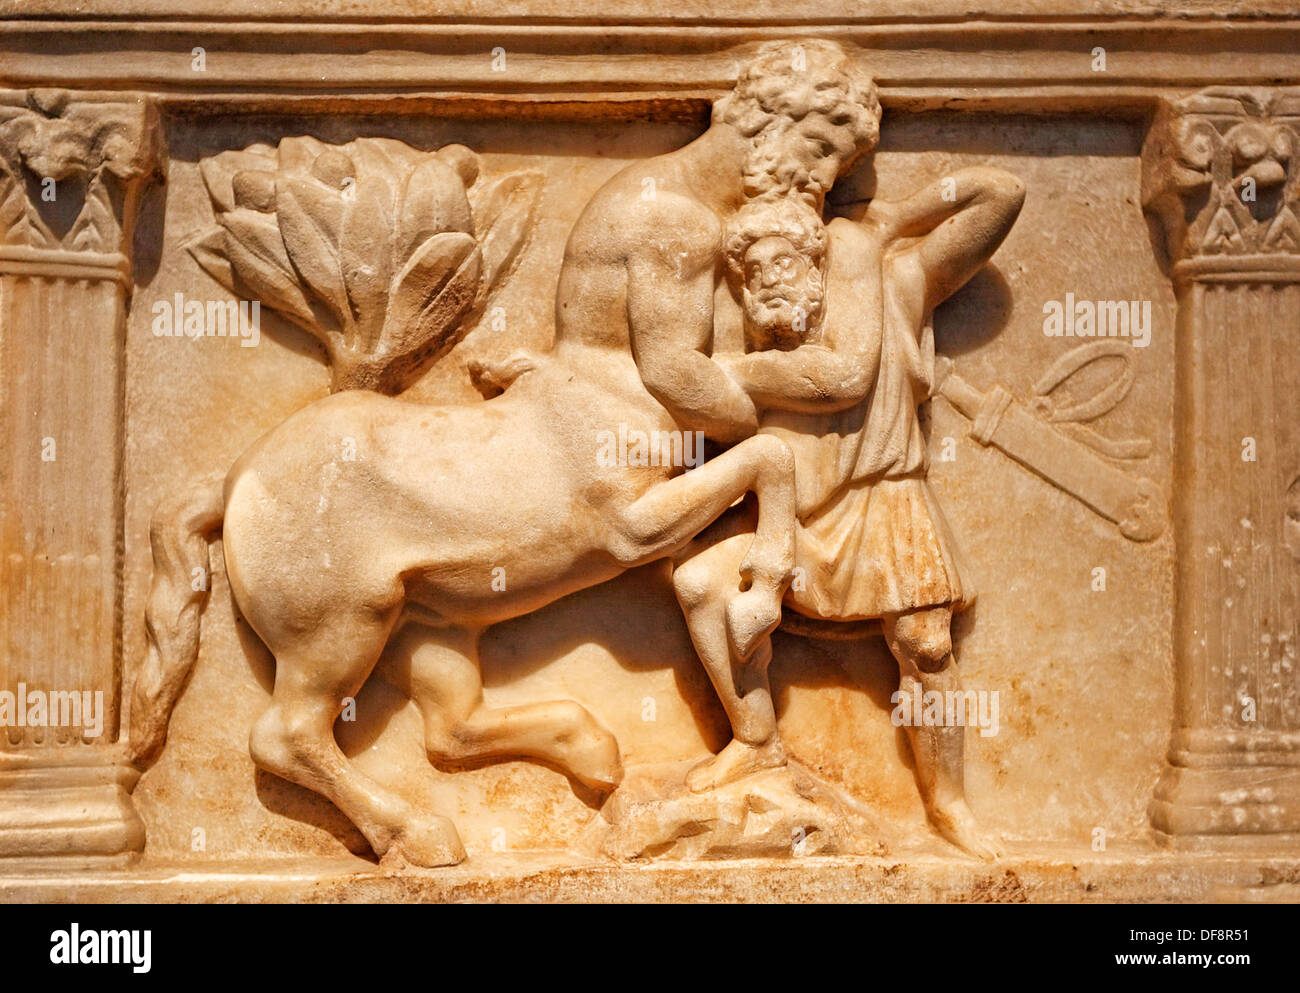 A Centaur wrestles with a bearded man on a marble ossuary in the form of a sarcophagus (150-200 A.D.) in National Museum, Greece - Stock Image